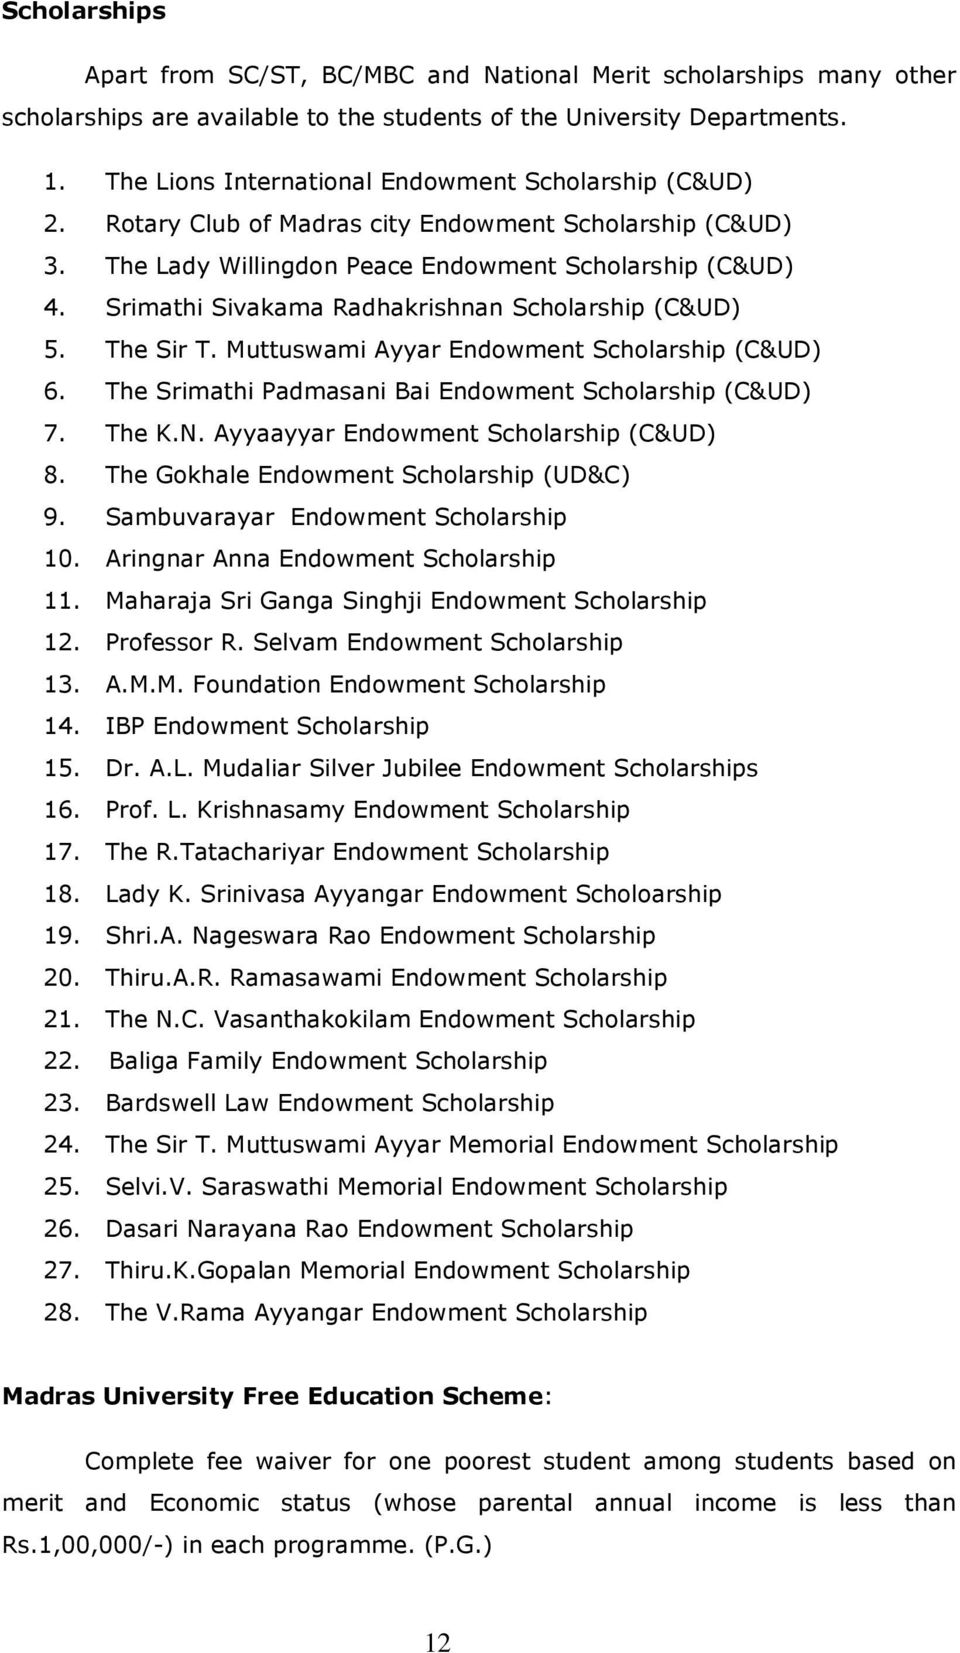 Srimathi Sivakama Radhakrishnan Scholarship (C&UD) 5. The Sir T. Muttuswami Ayyar Endowment Scholarship (C&UD) 6. The Srimathi Padmasani Bai Endowment Scholarship (C&UD) 7. The K.N.